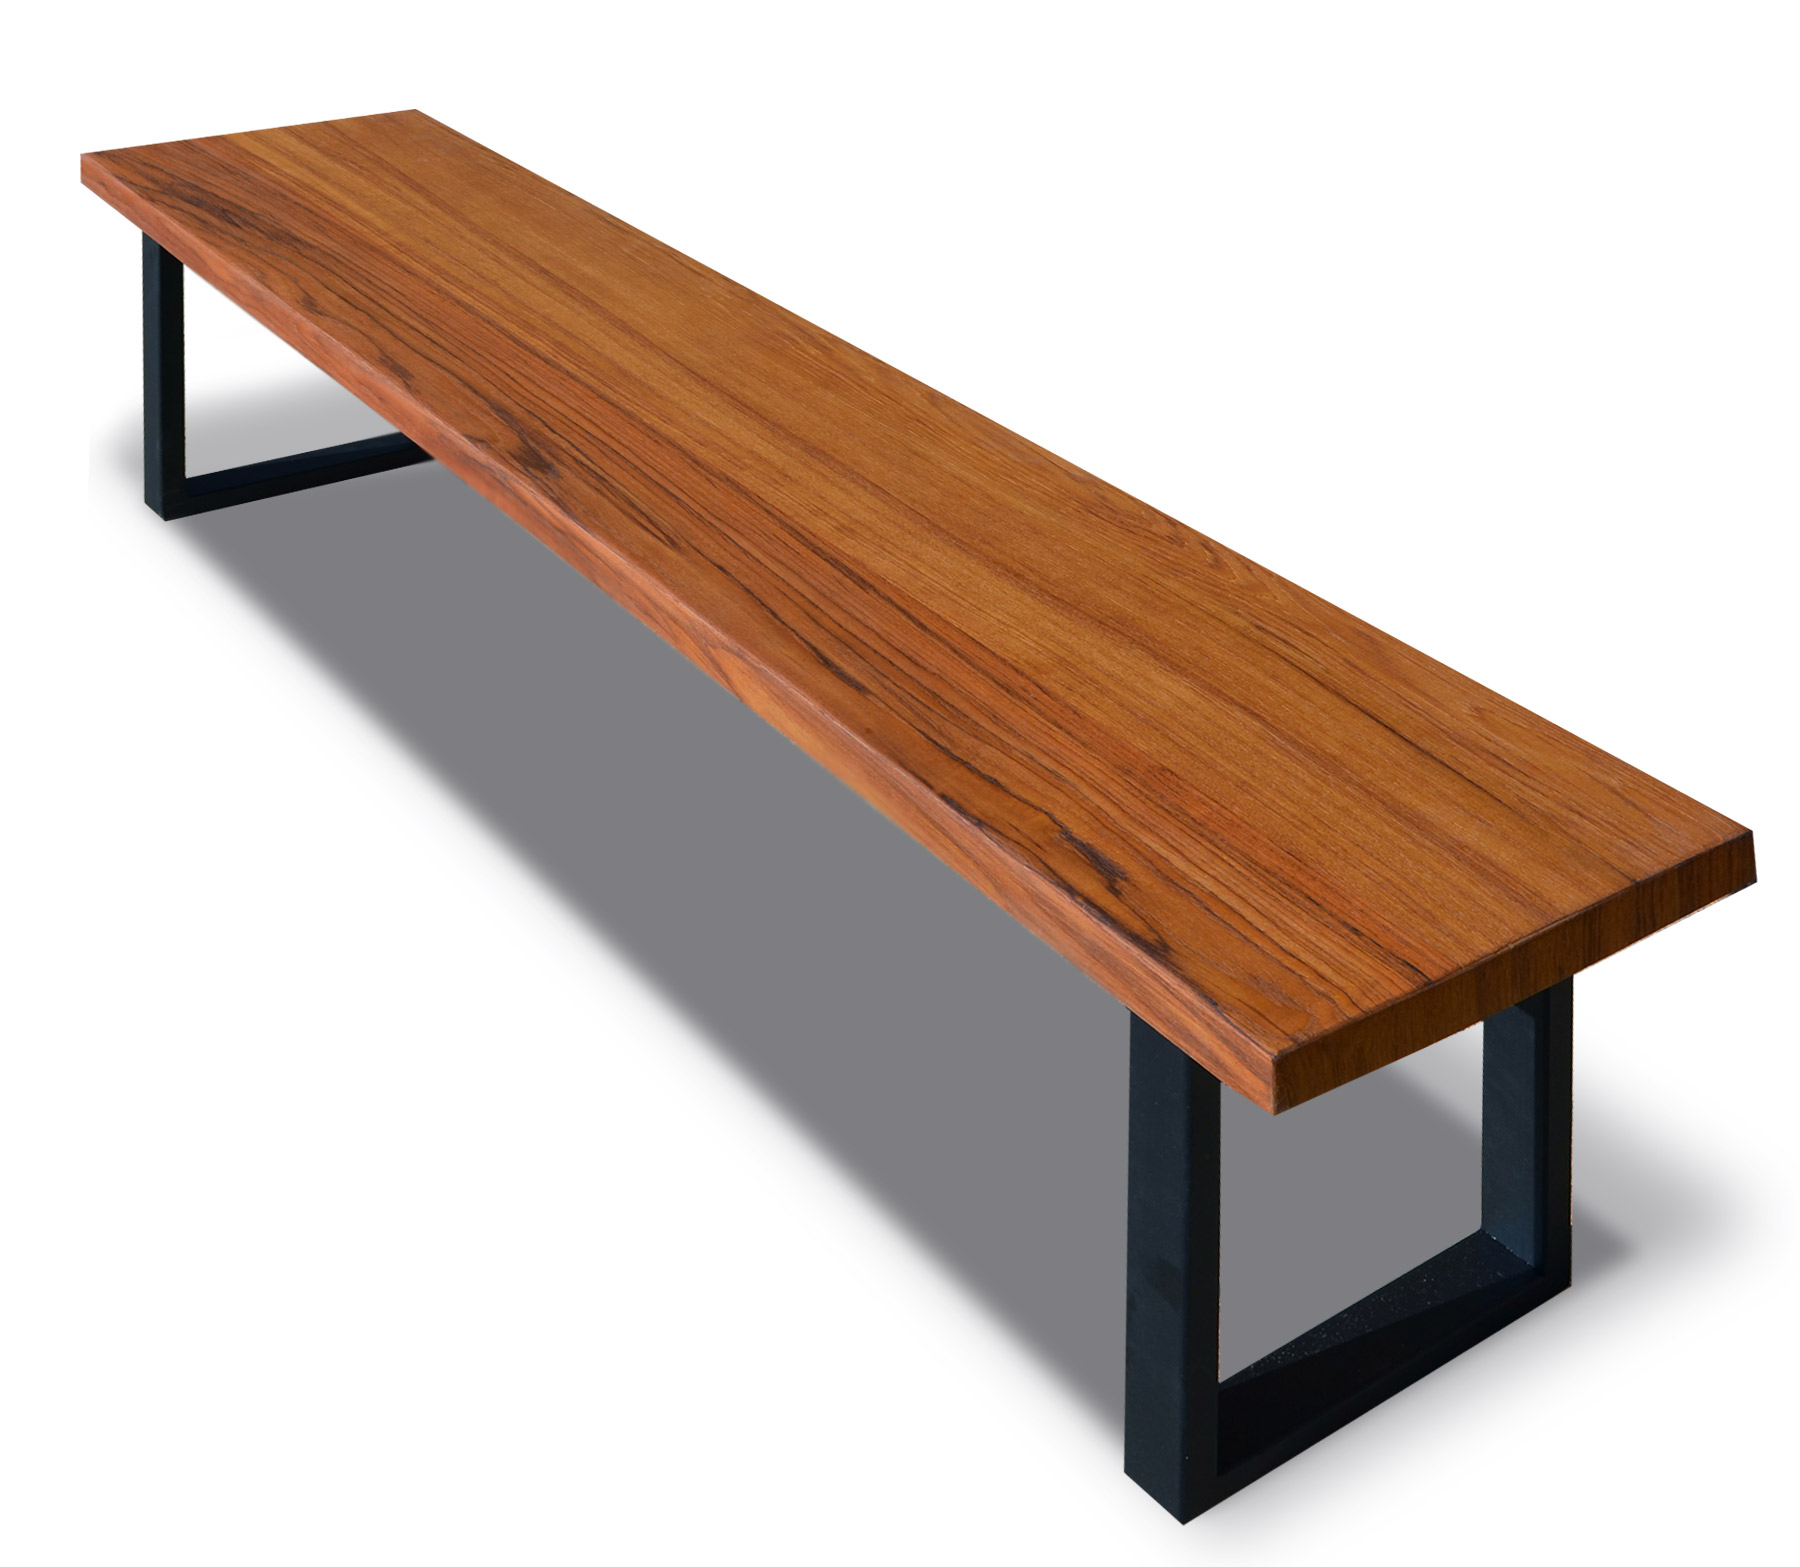 Sensational Exotic Wood Dining Benches Abodeacious Caraccident5 Cool Chair Designs And Ideas Caraccident5Info